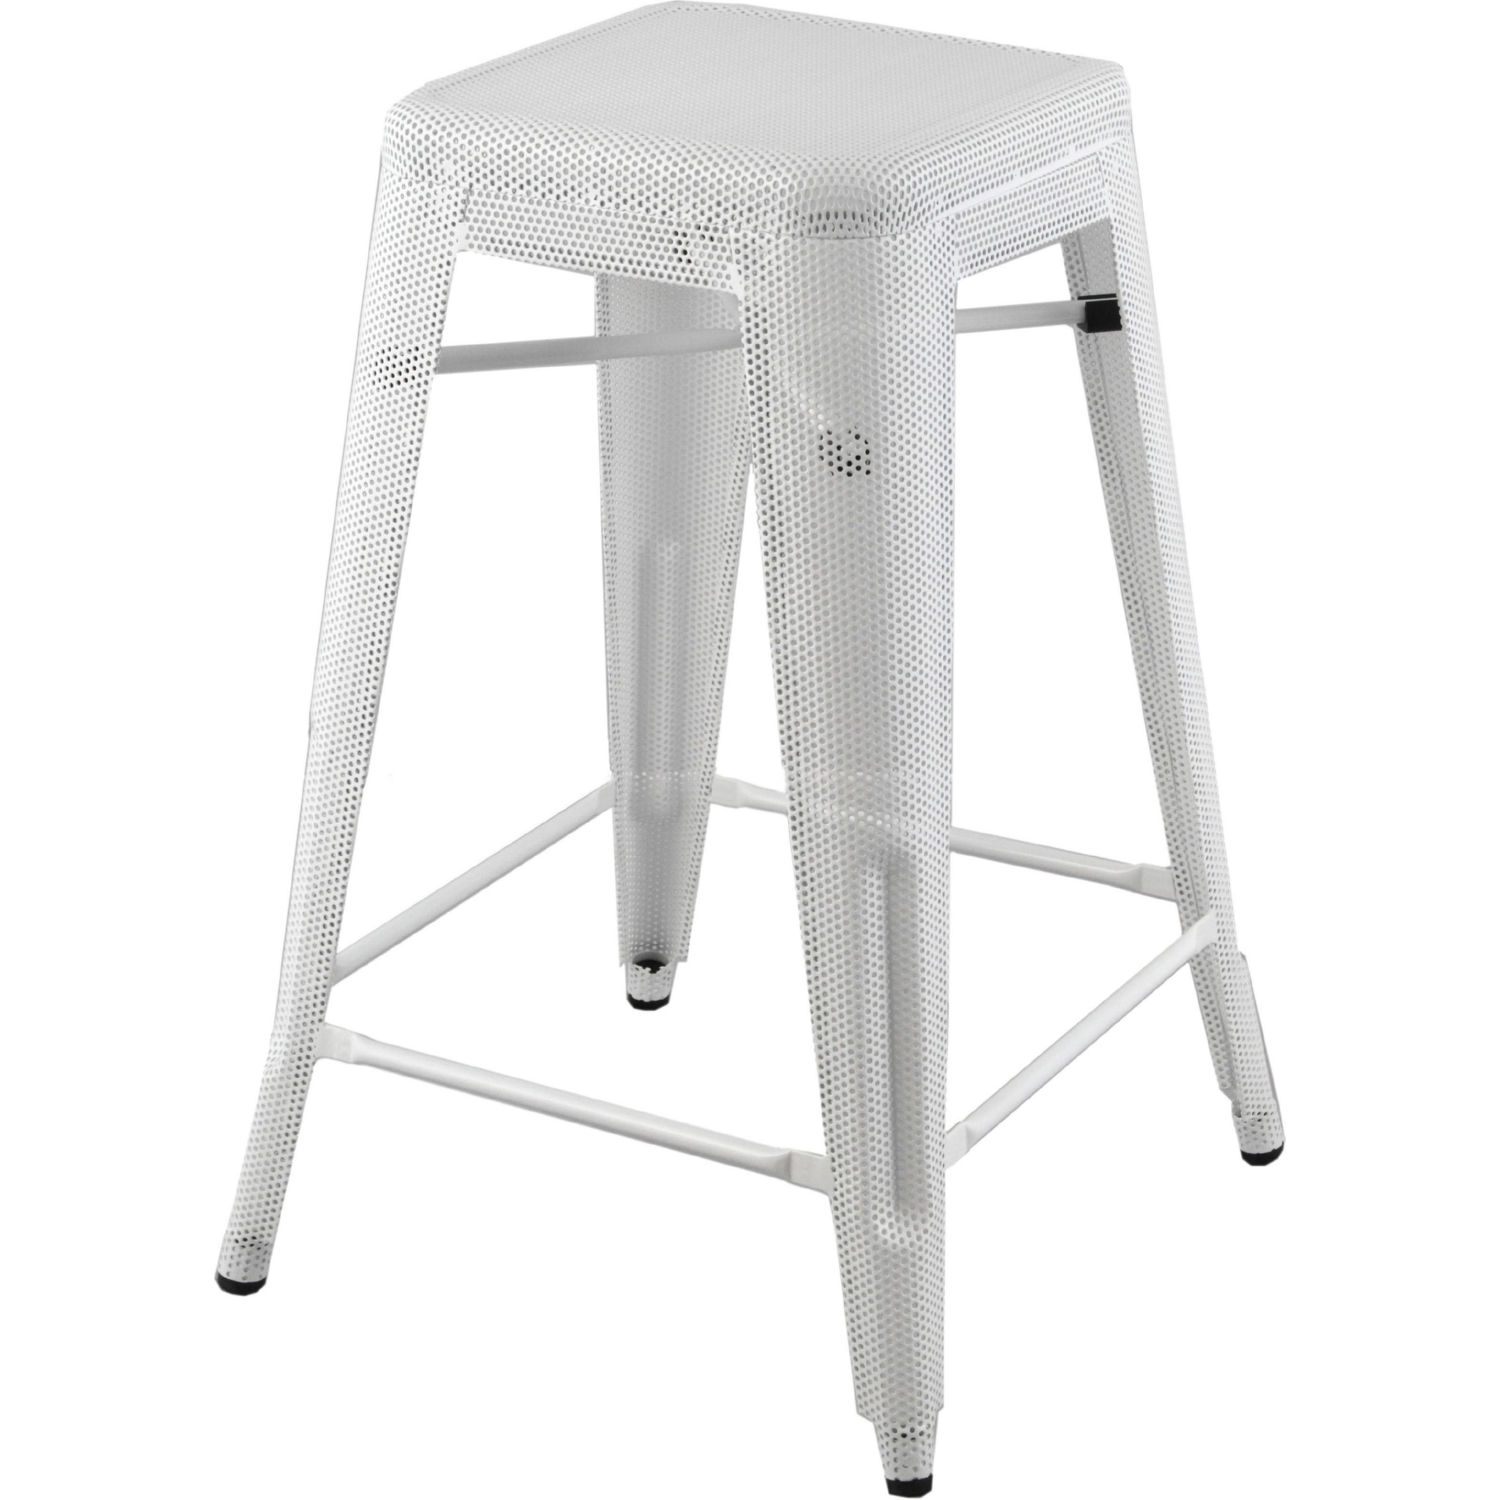 Stupendous Mesh Perforated Metal Backless Counter Stool In White Painted Finish By Diamond Sofa Andrewgaddart Wooden Chair Designs For Living Room Andrewgaddartcom